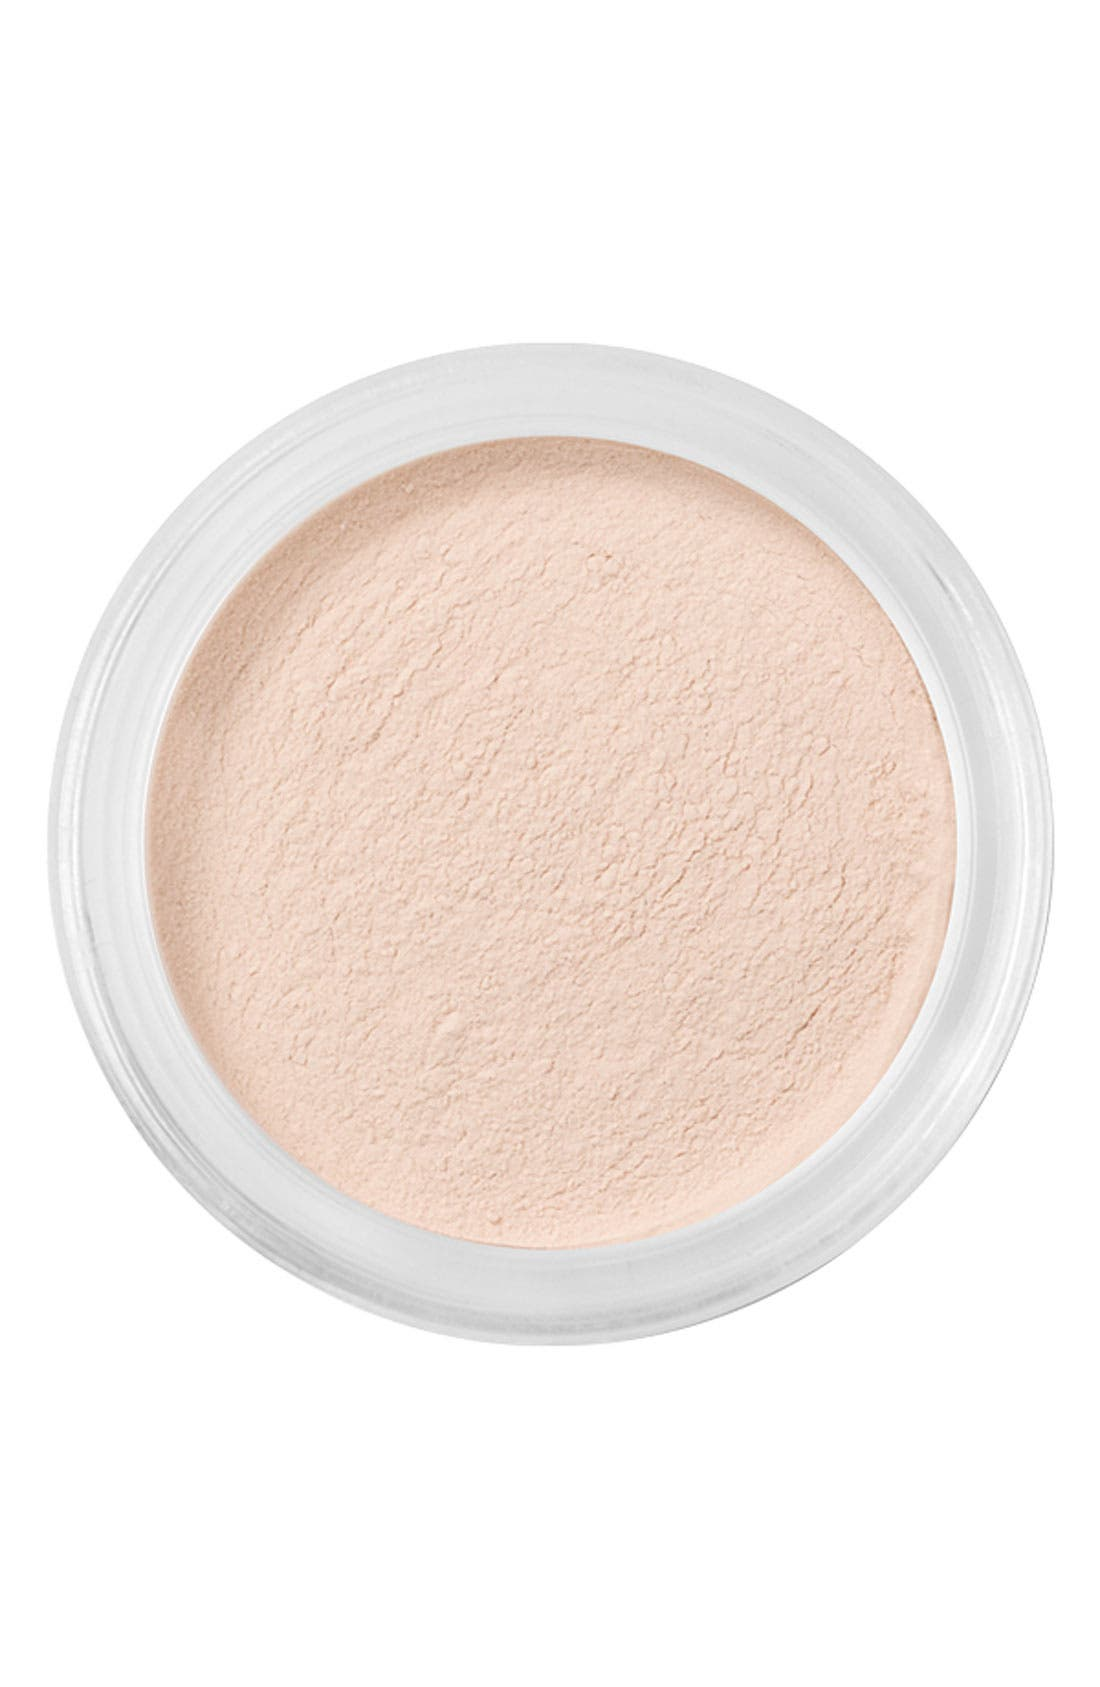 Hydrating Mineral Veil,                         Main,                         color, HYDRATING